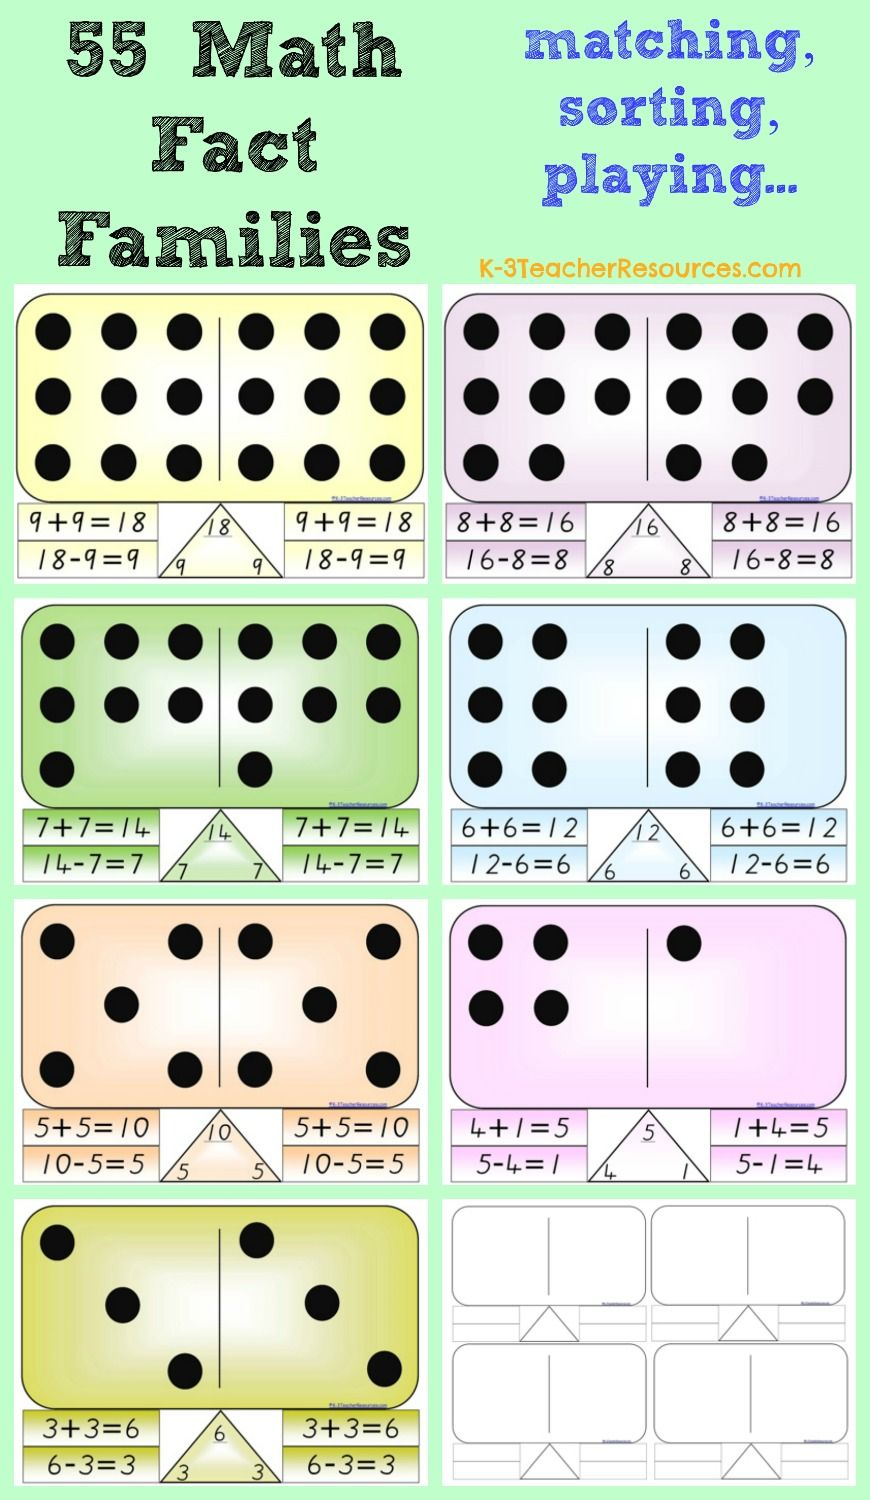 55 Math Fact Families - cut up and match, sort and play dominoes ...